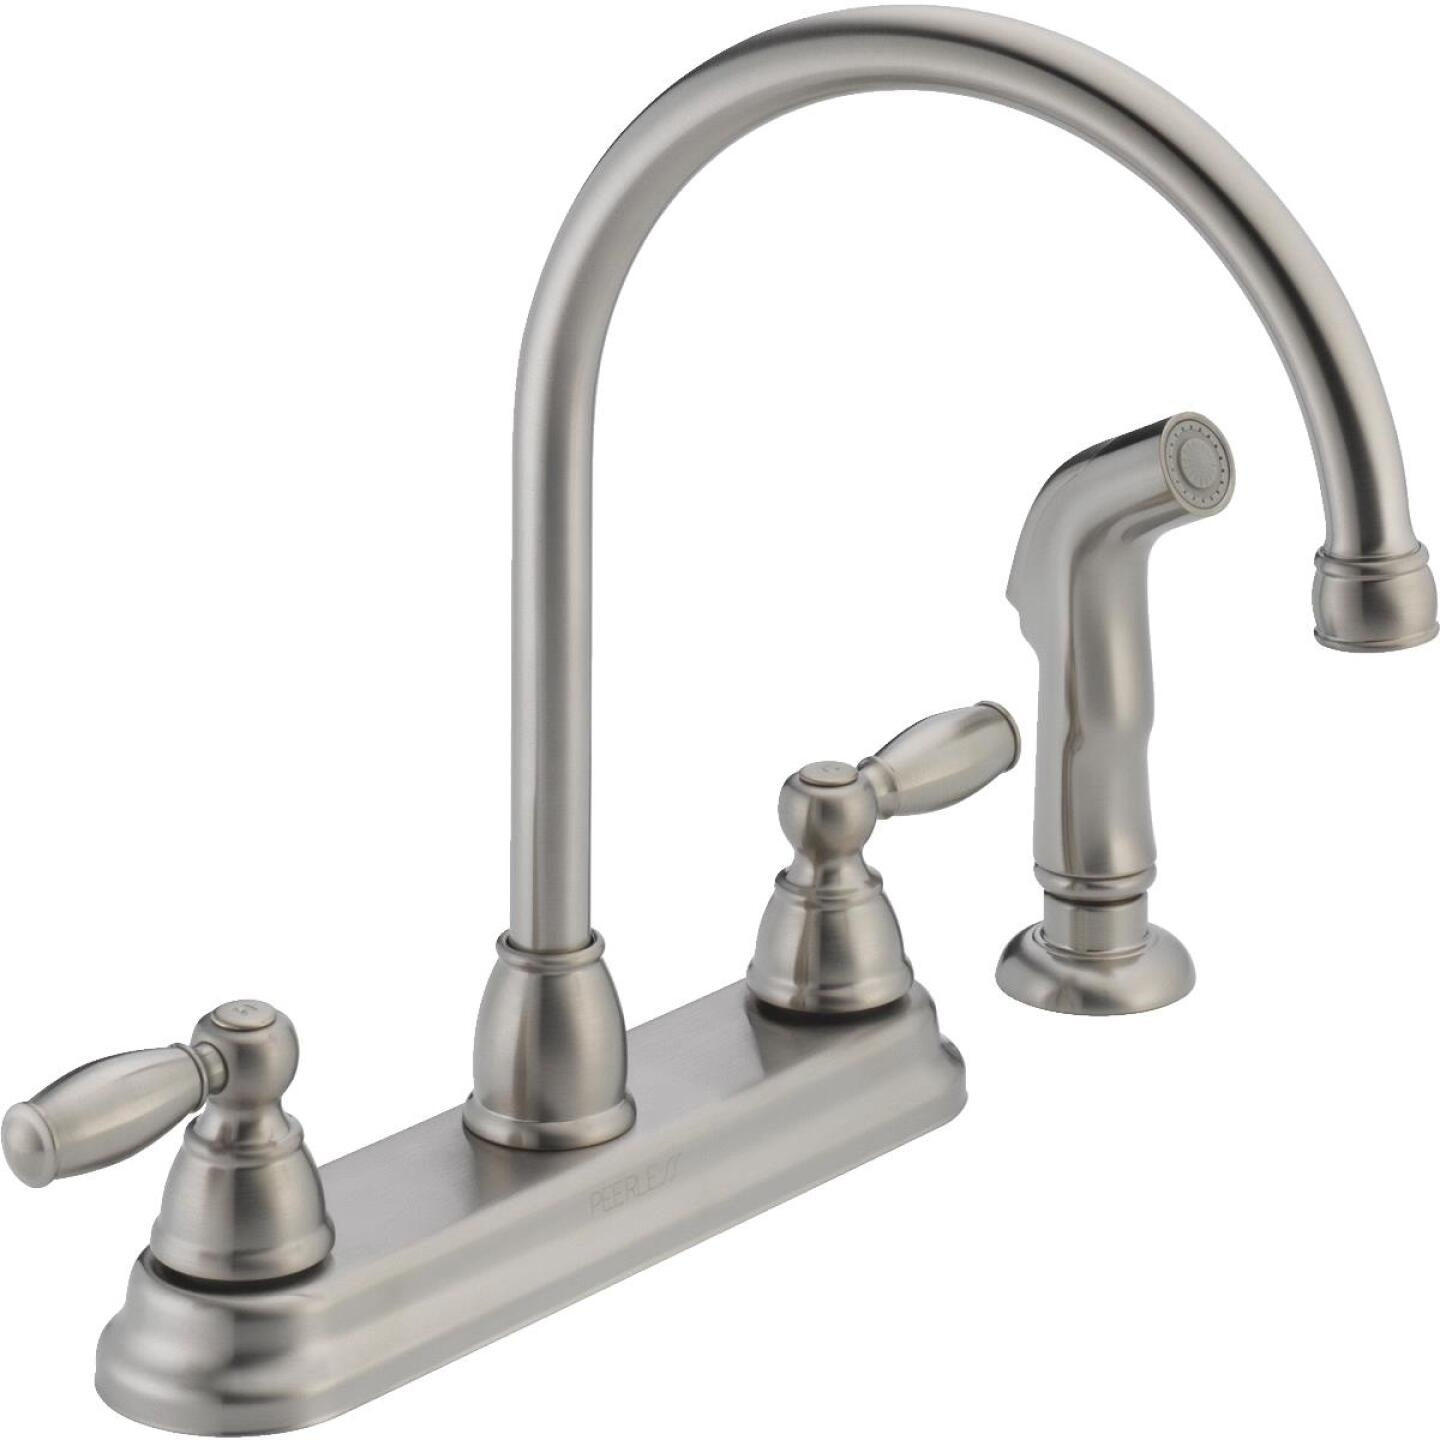 Peerless Dual Handle Lever Kitchen Faucet with Side Spray, Stainless Image 1